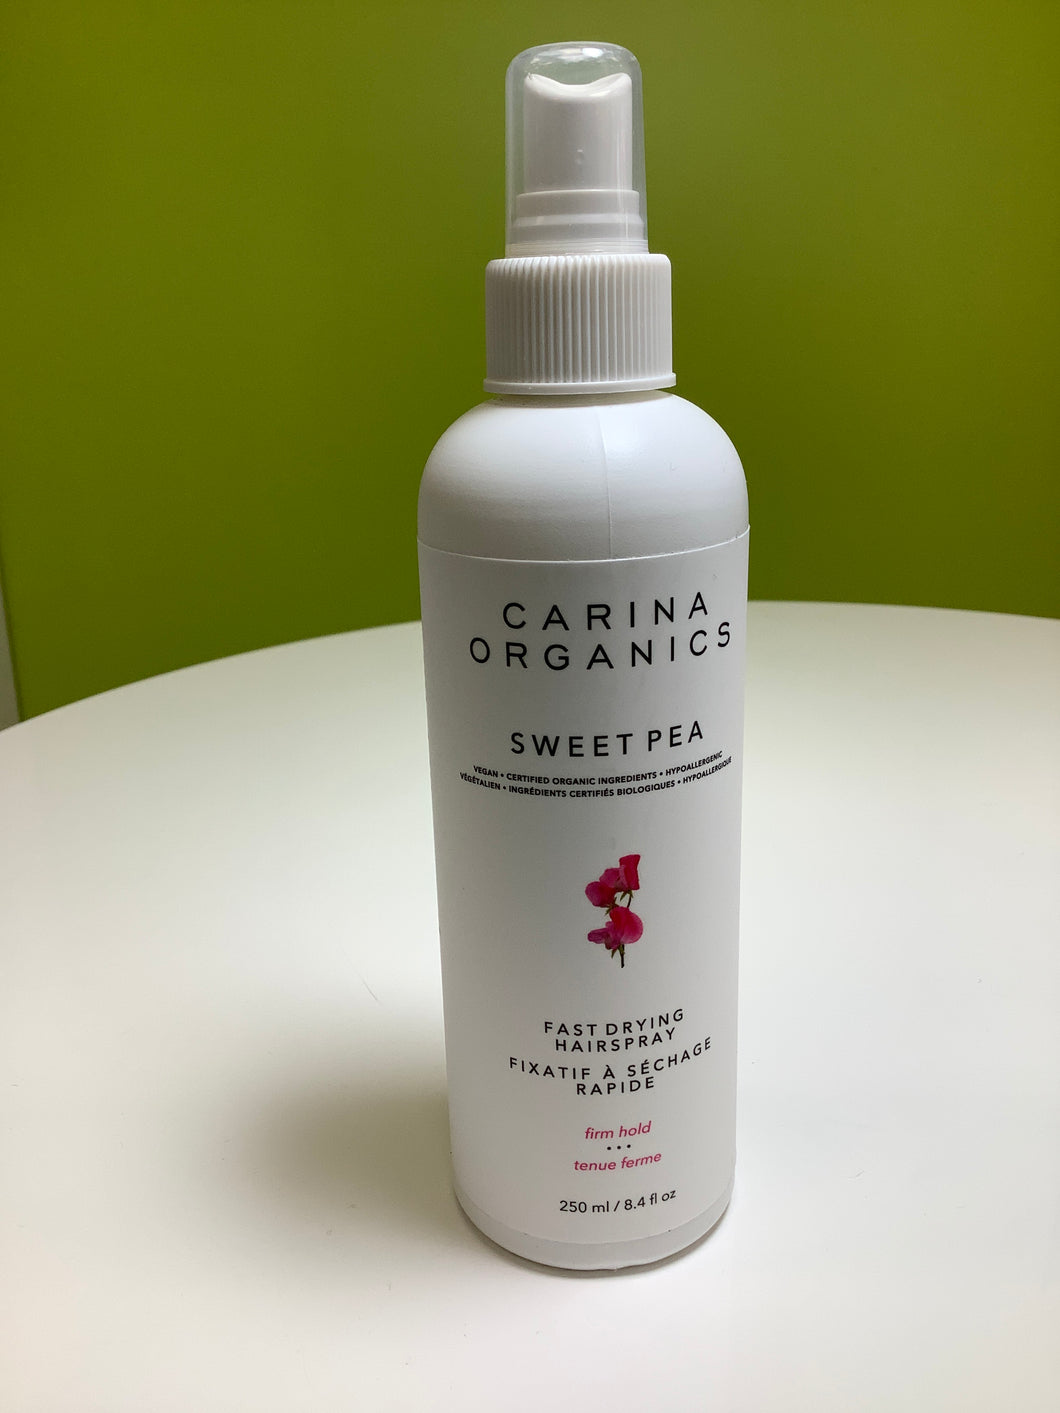 Carina Organics Sweet Pea Fast Drying Hair Spray